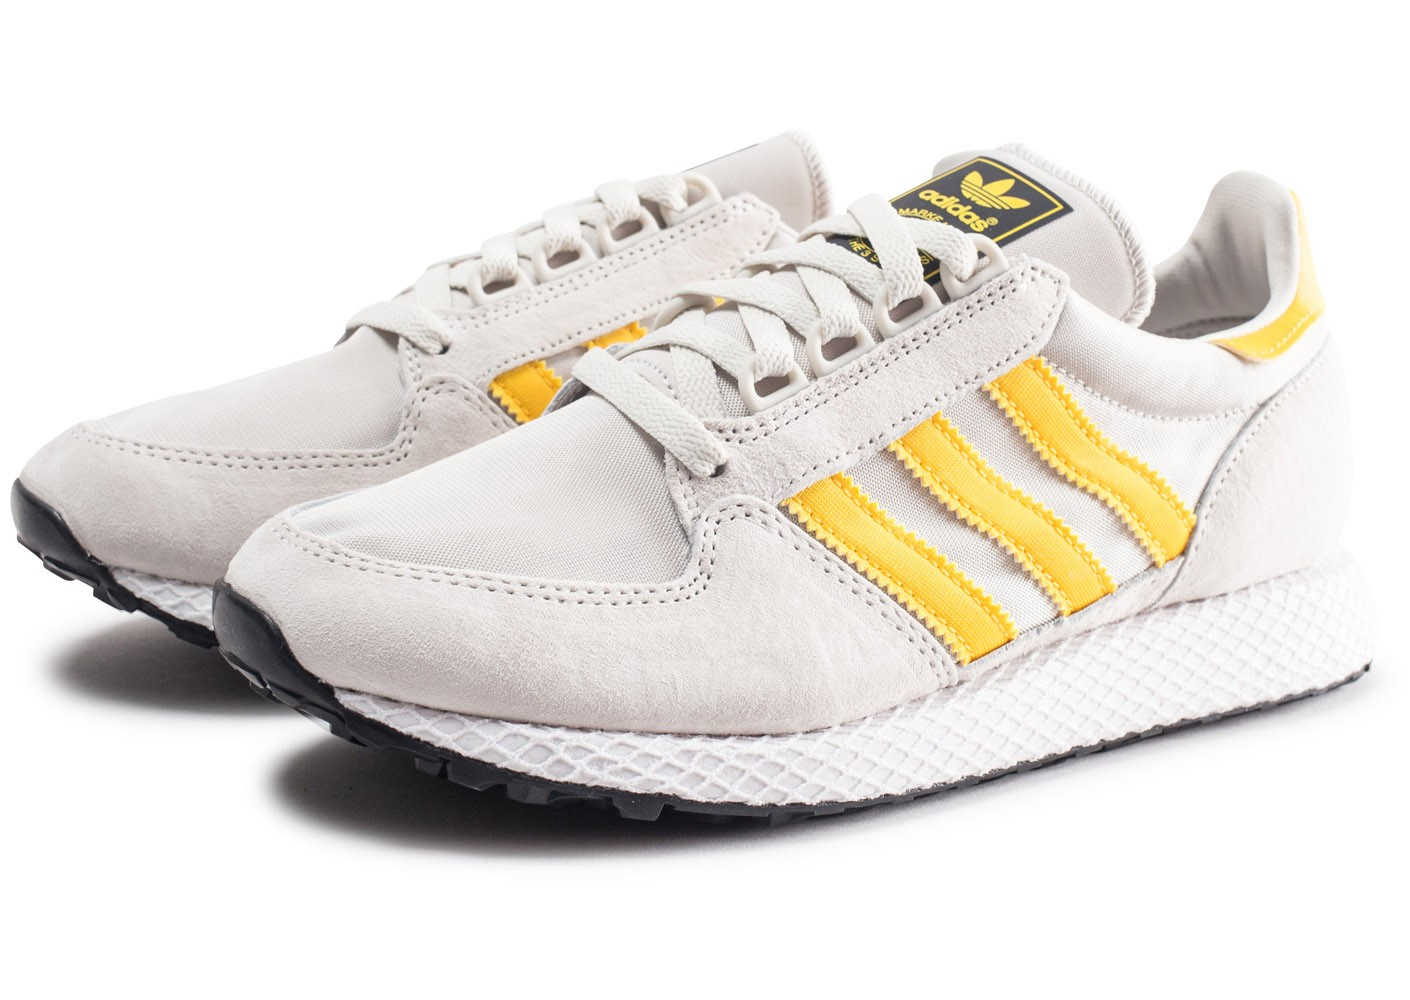 Chaussures Chausport Gris Homme Adidas Forest Grove Et Or Baskets 354ARjLq